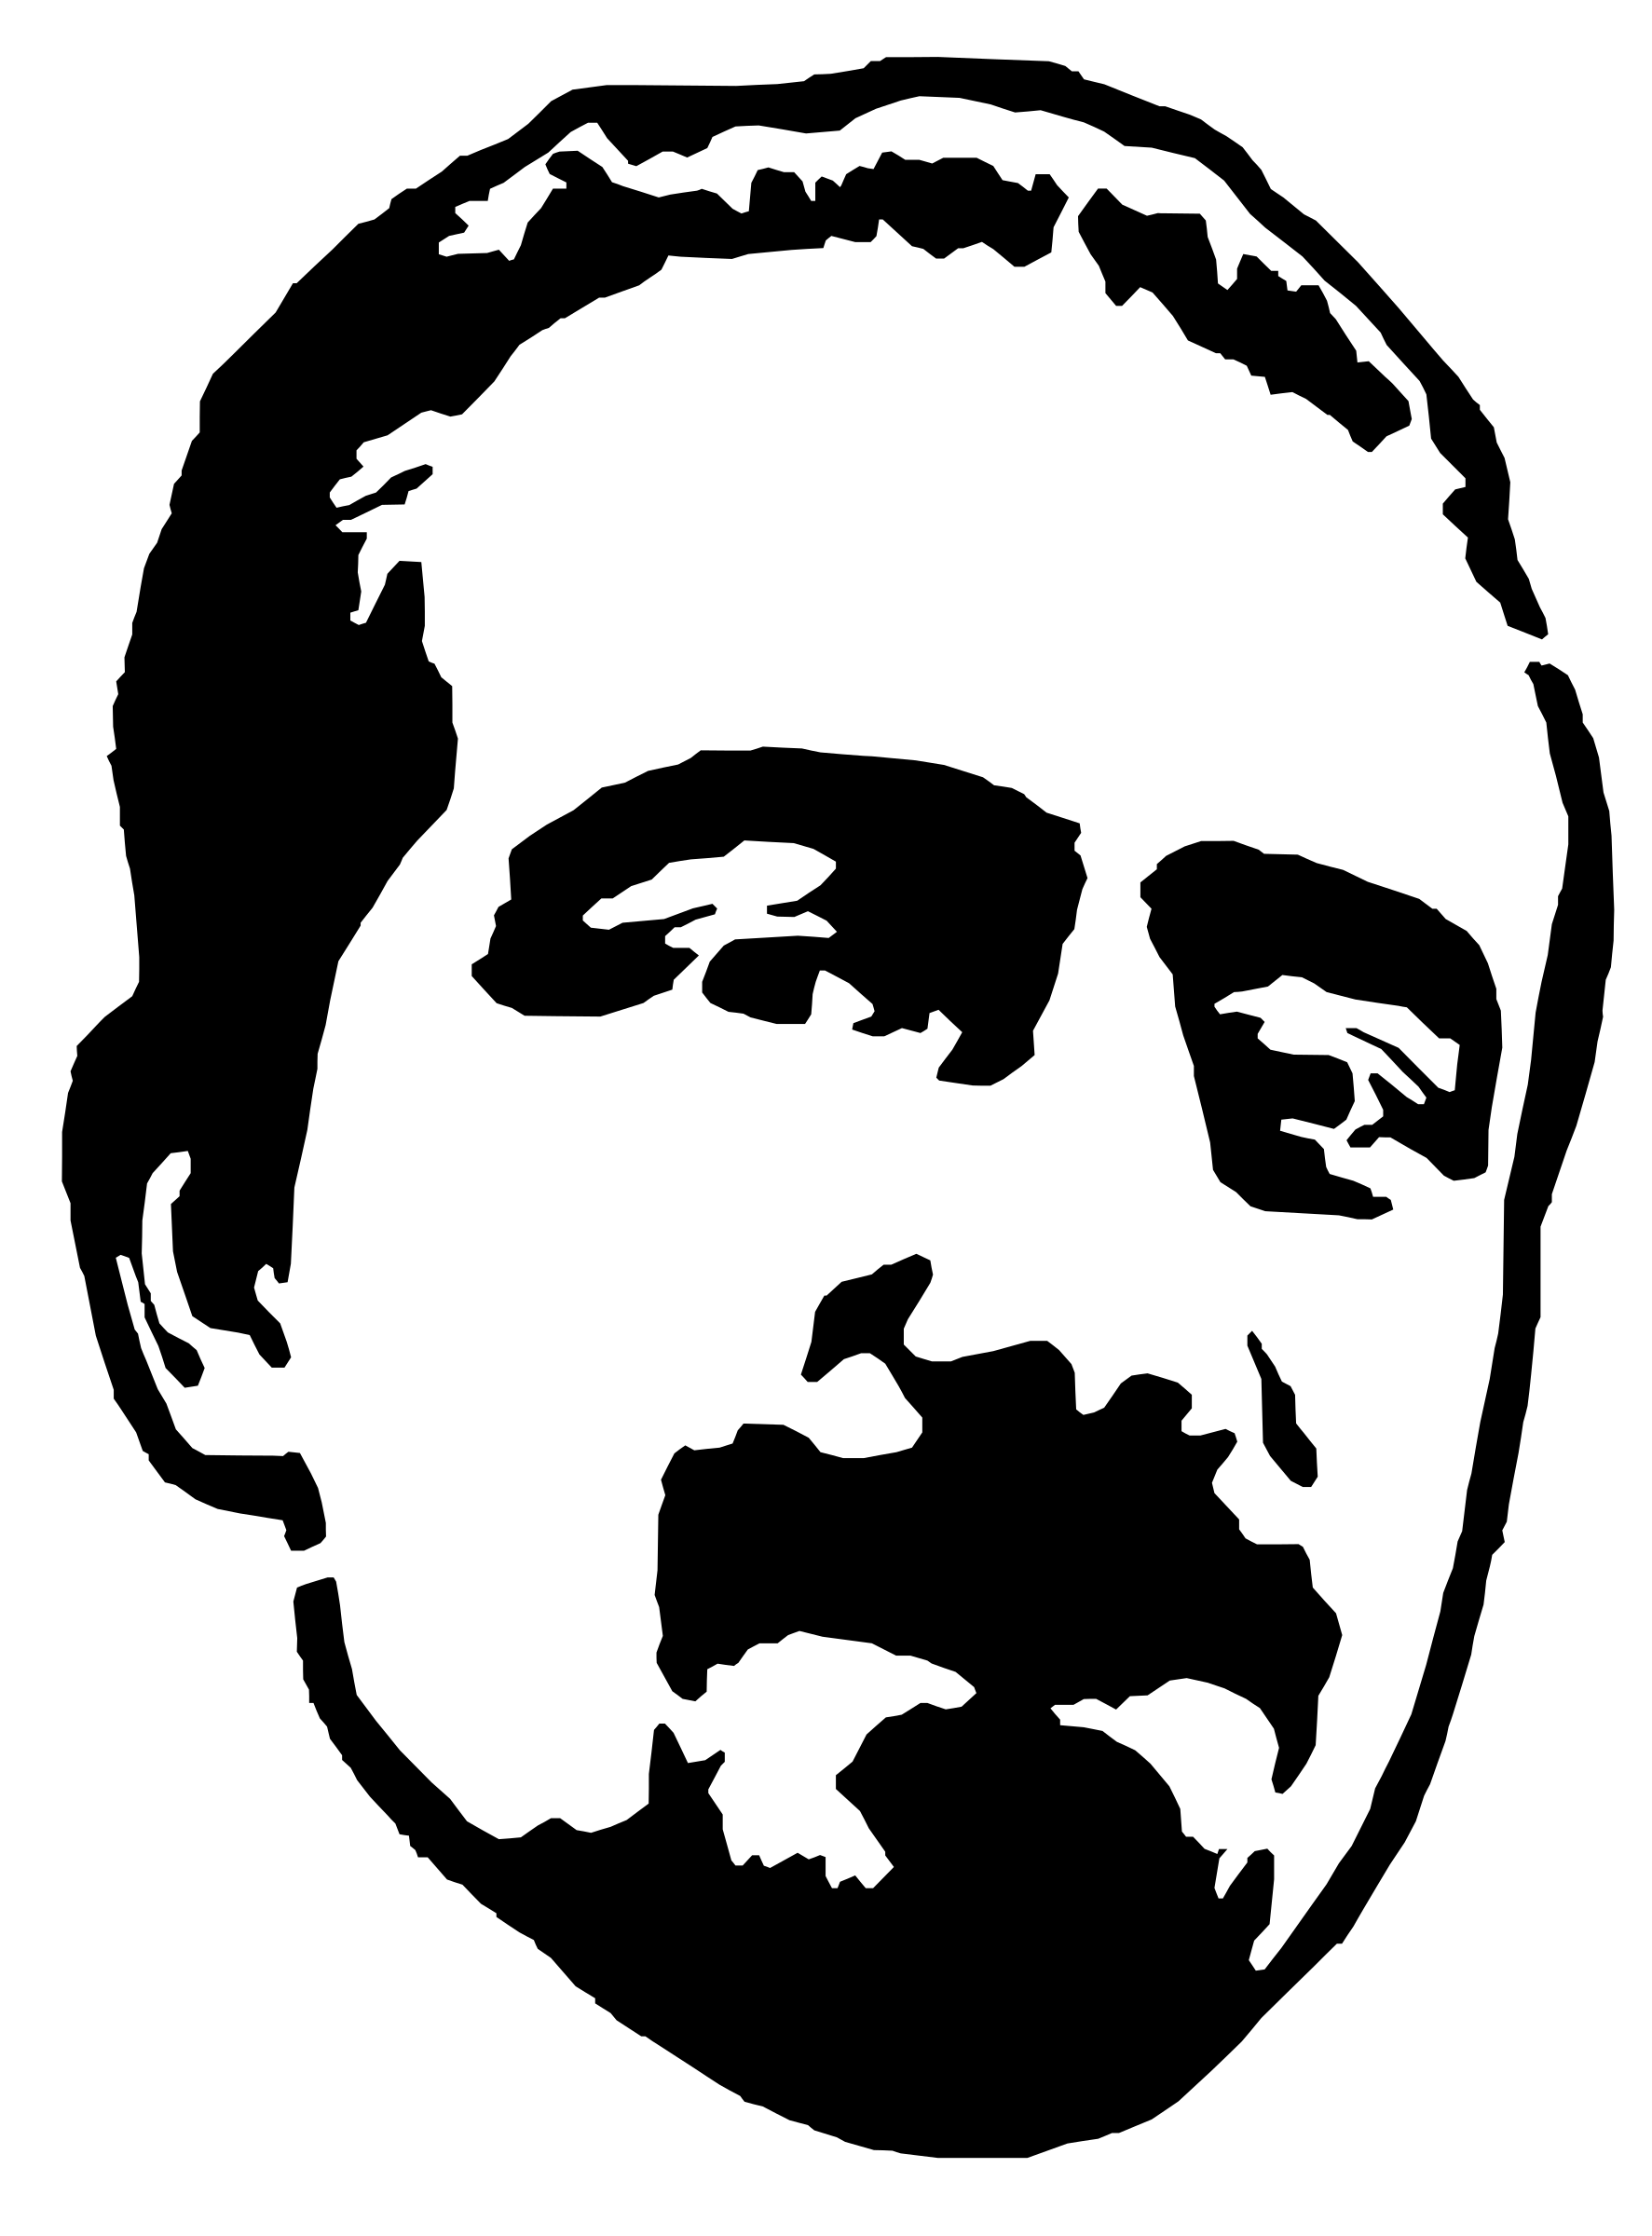 Freebassel Stencil Head Graphic by rejon